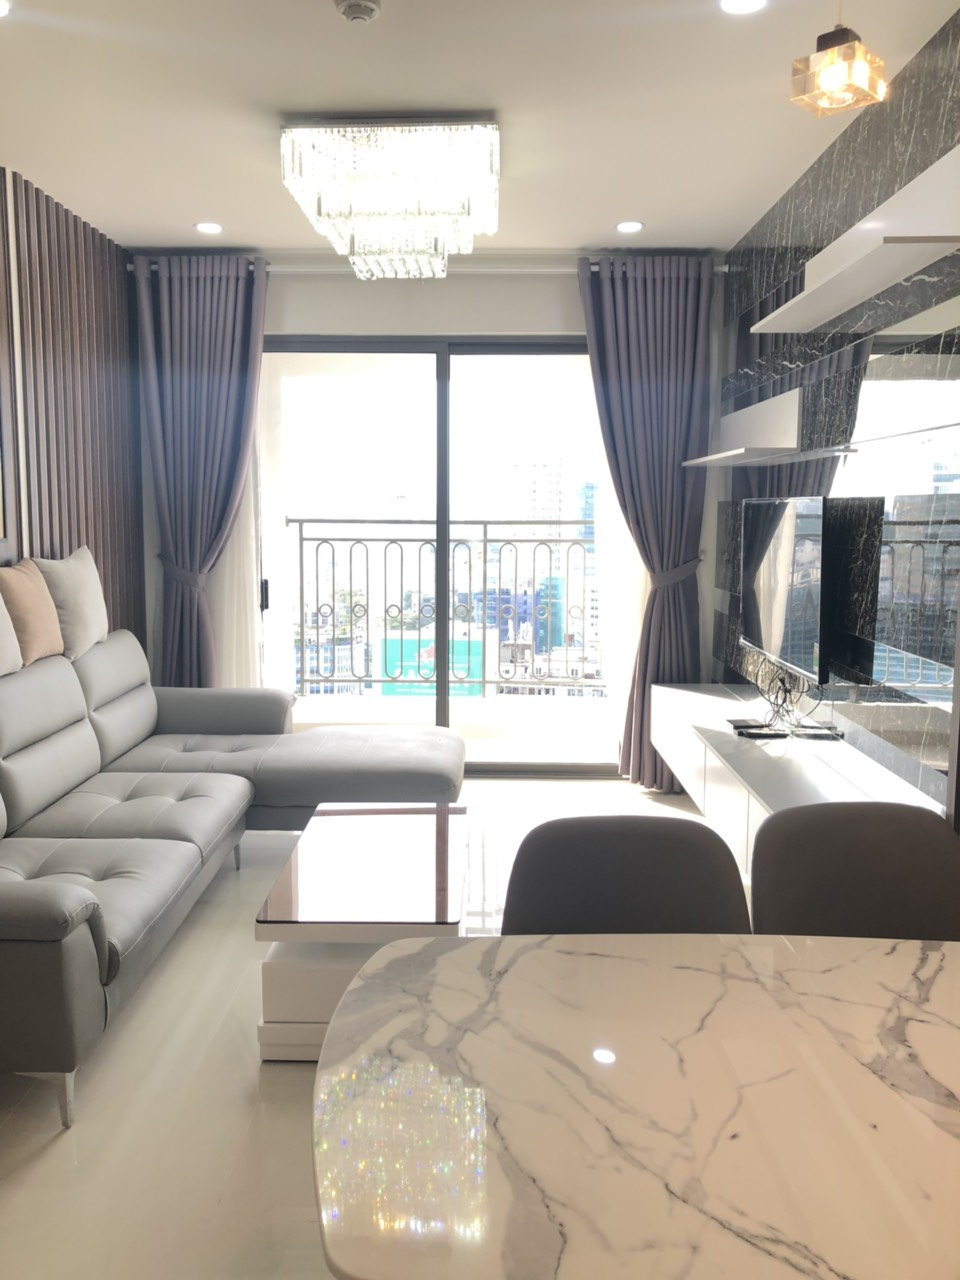 sale Saigon Royal Residence - 2 bedroom - 2 wc